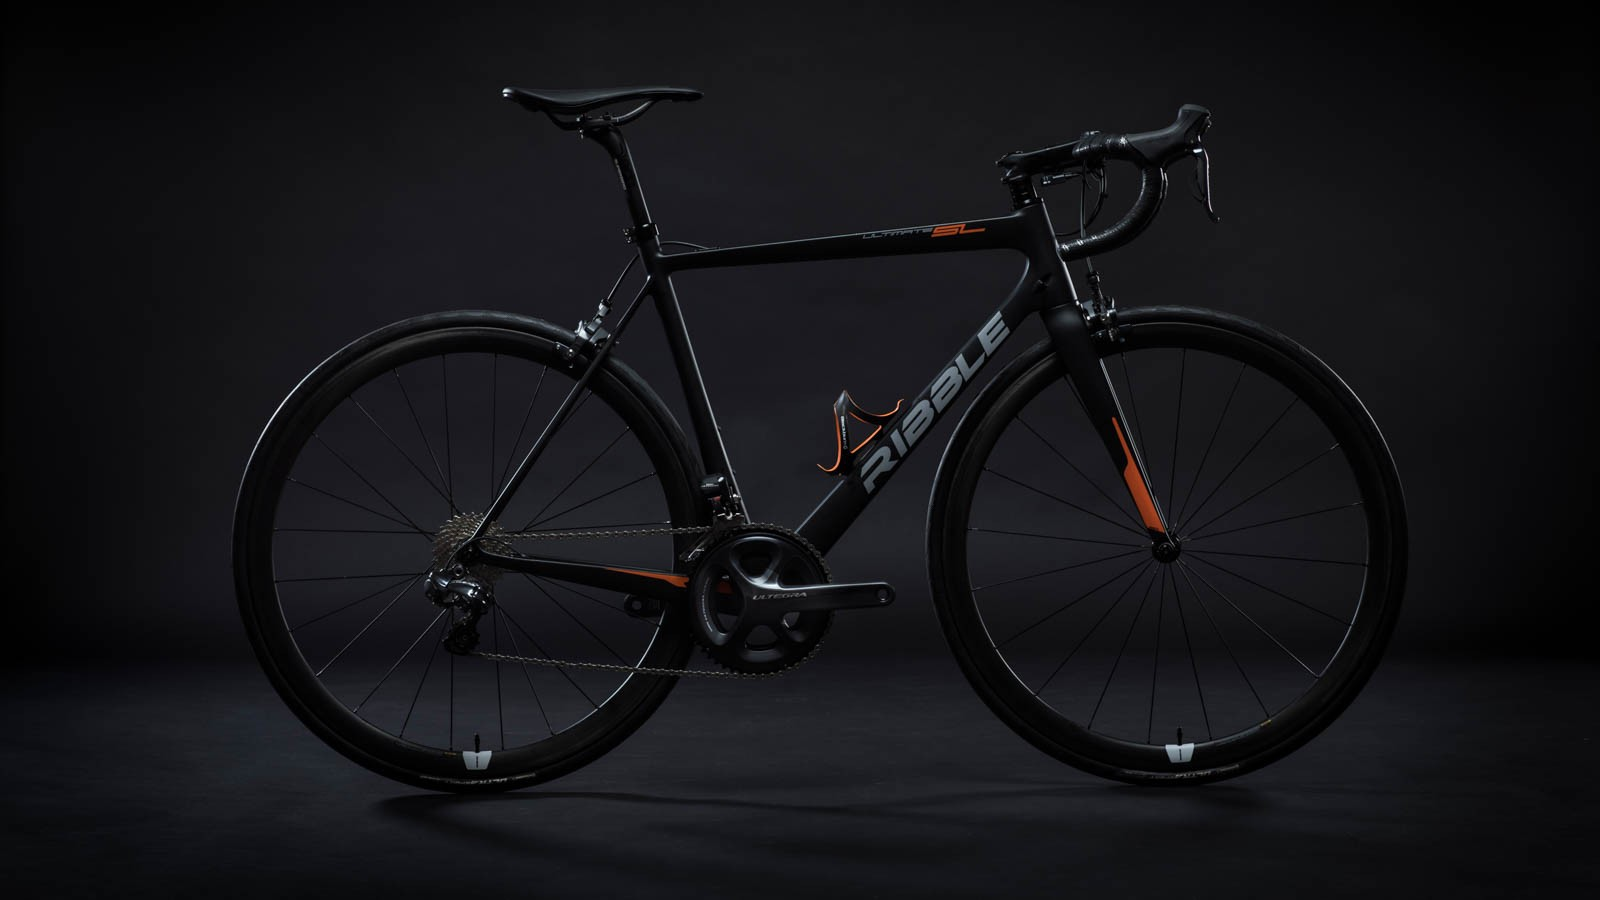 Ribble's new Ultimate SL is designed for racing and mountain rides